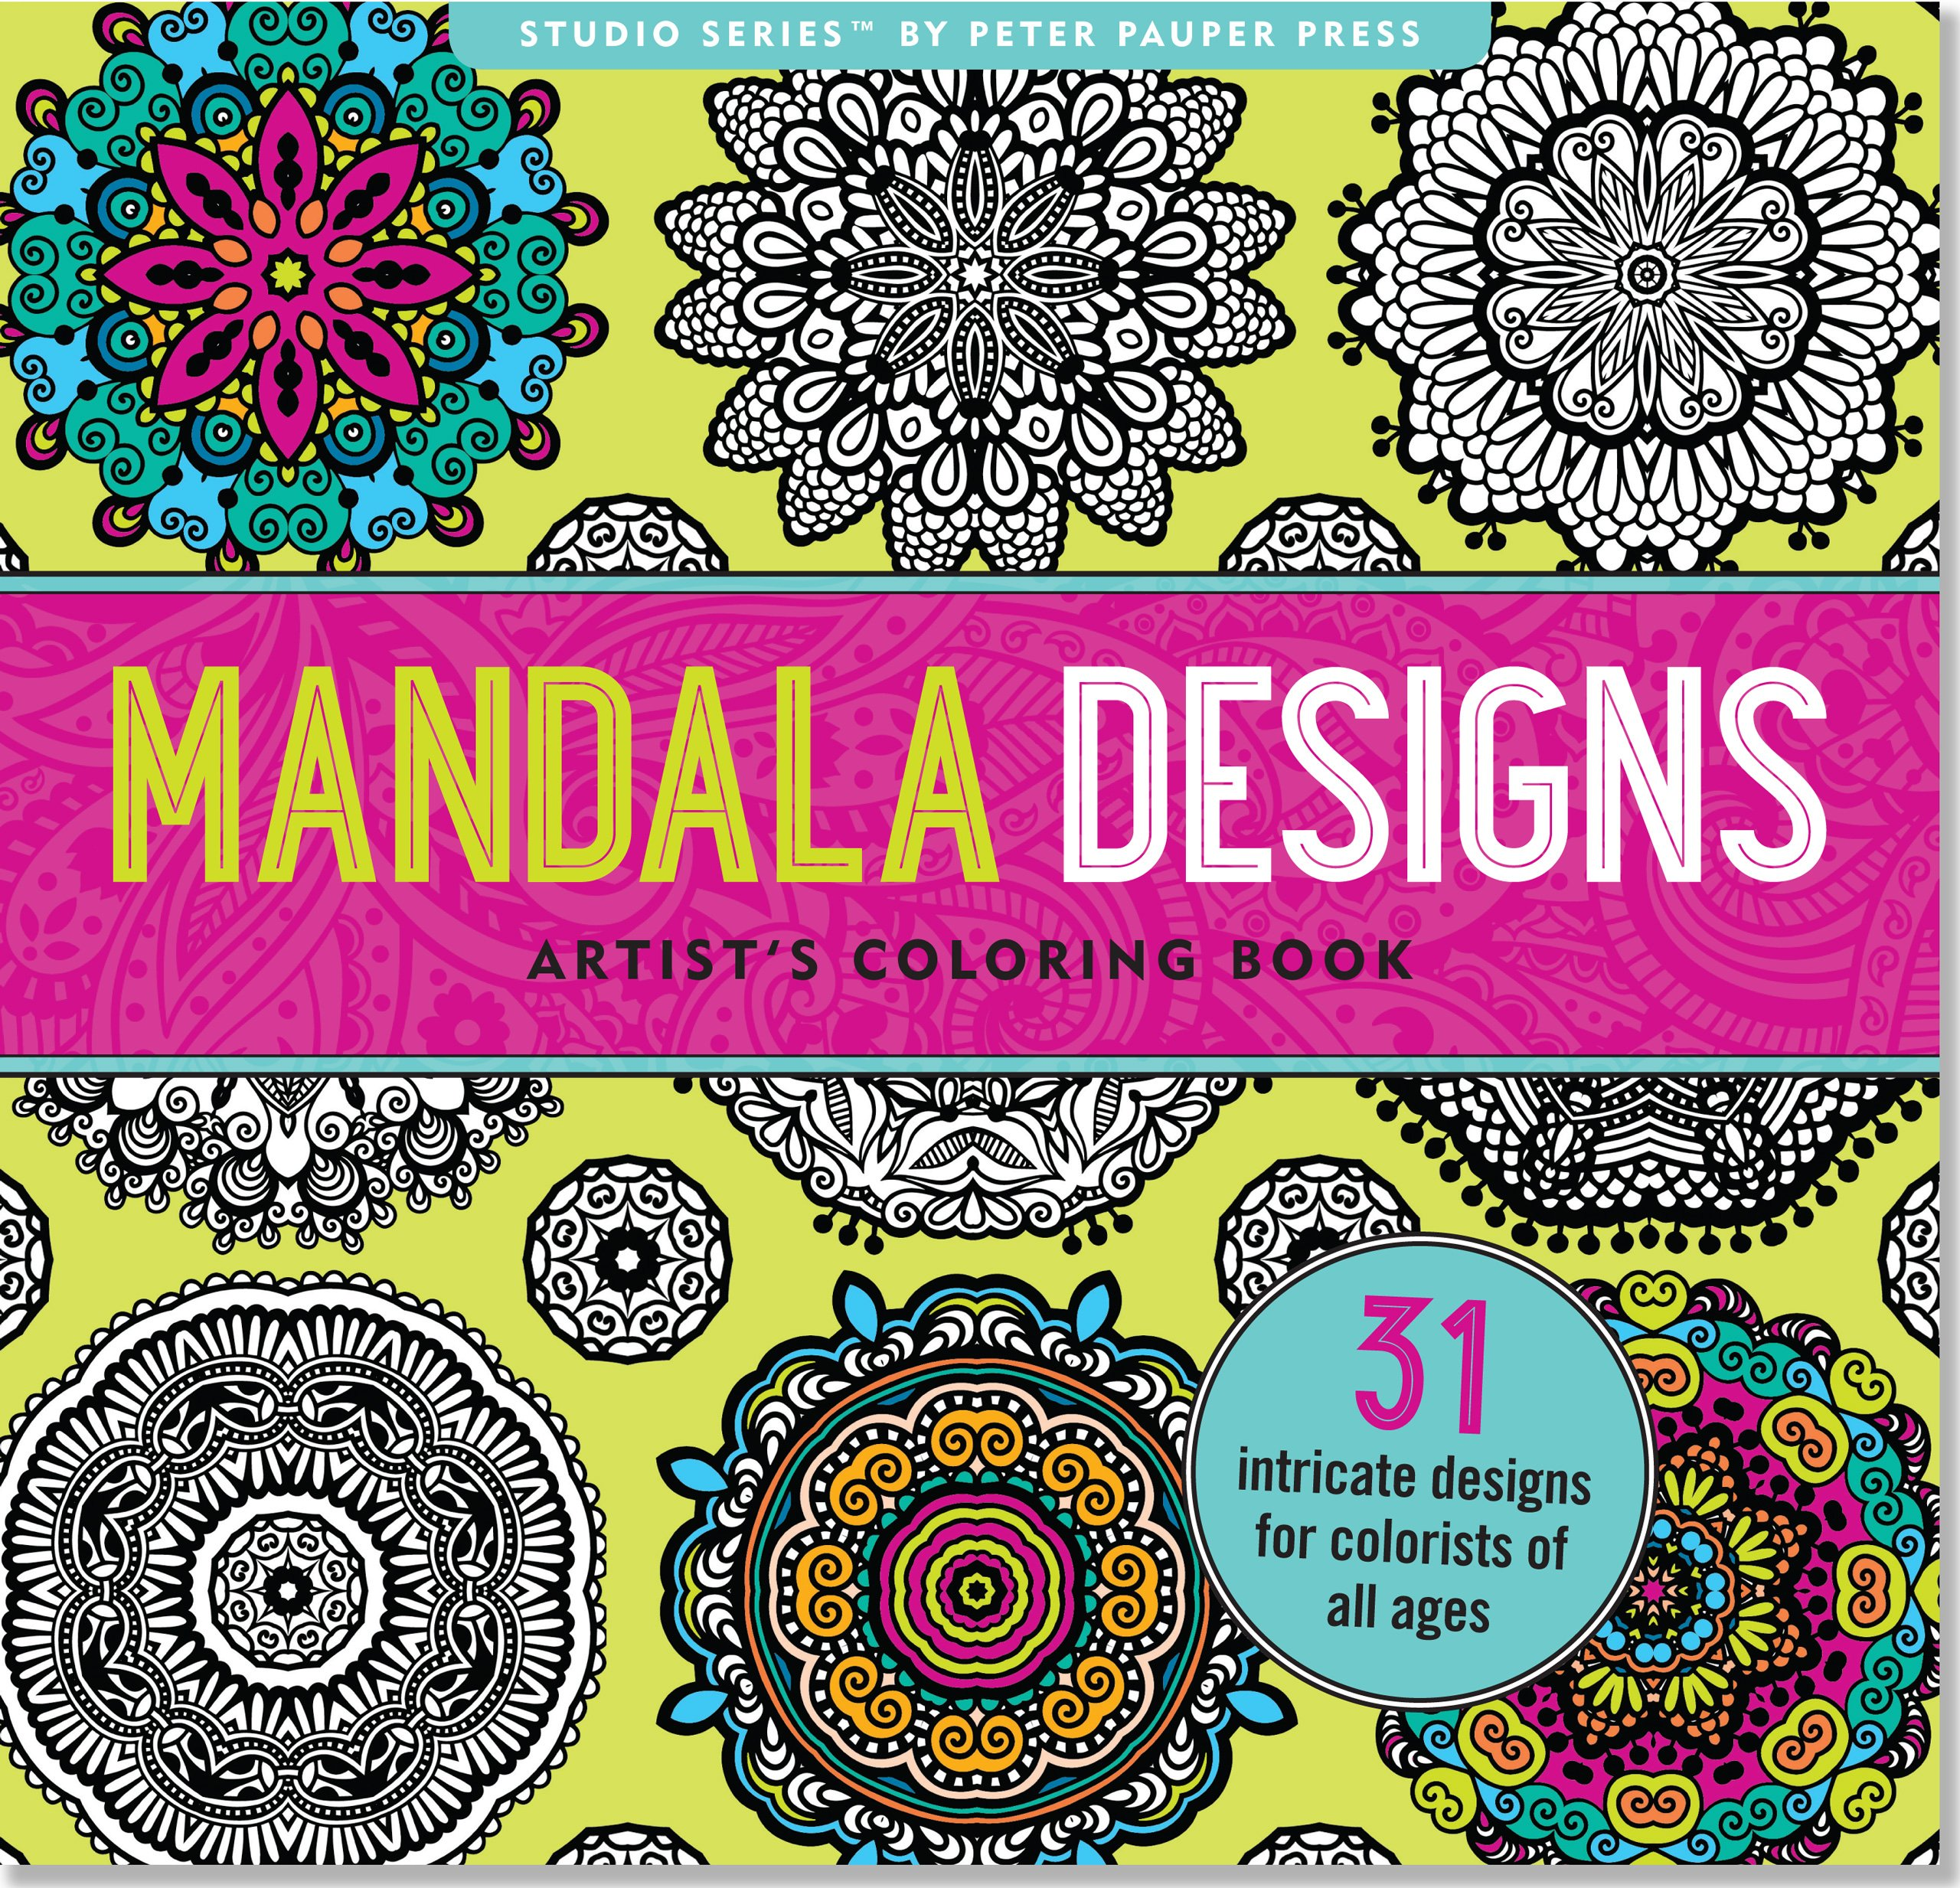 How much is the coloring book for adults - Mandala Designs Adult Coloring Book By Peter Pauper Press